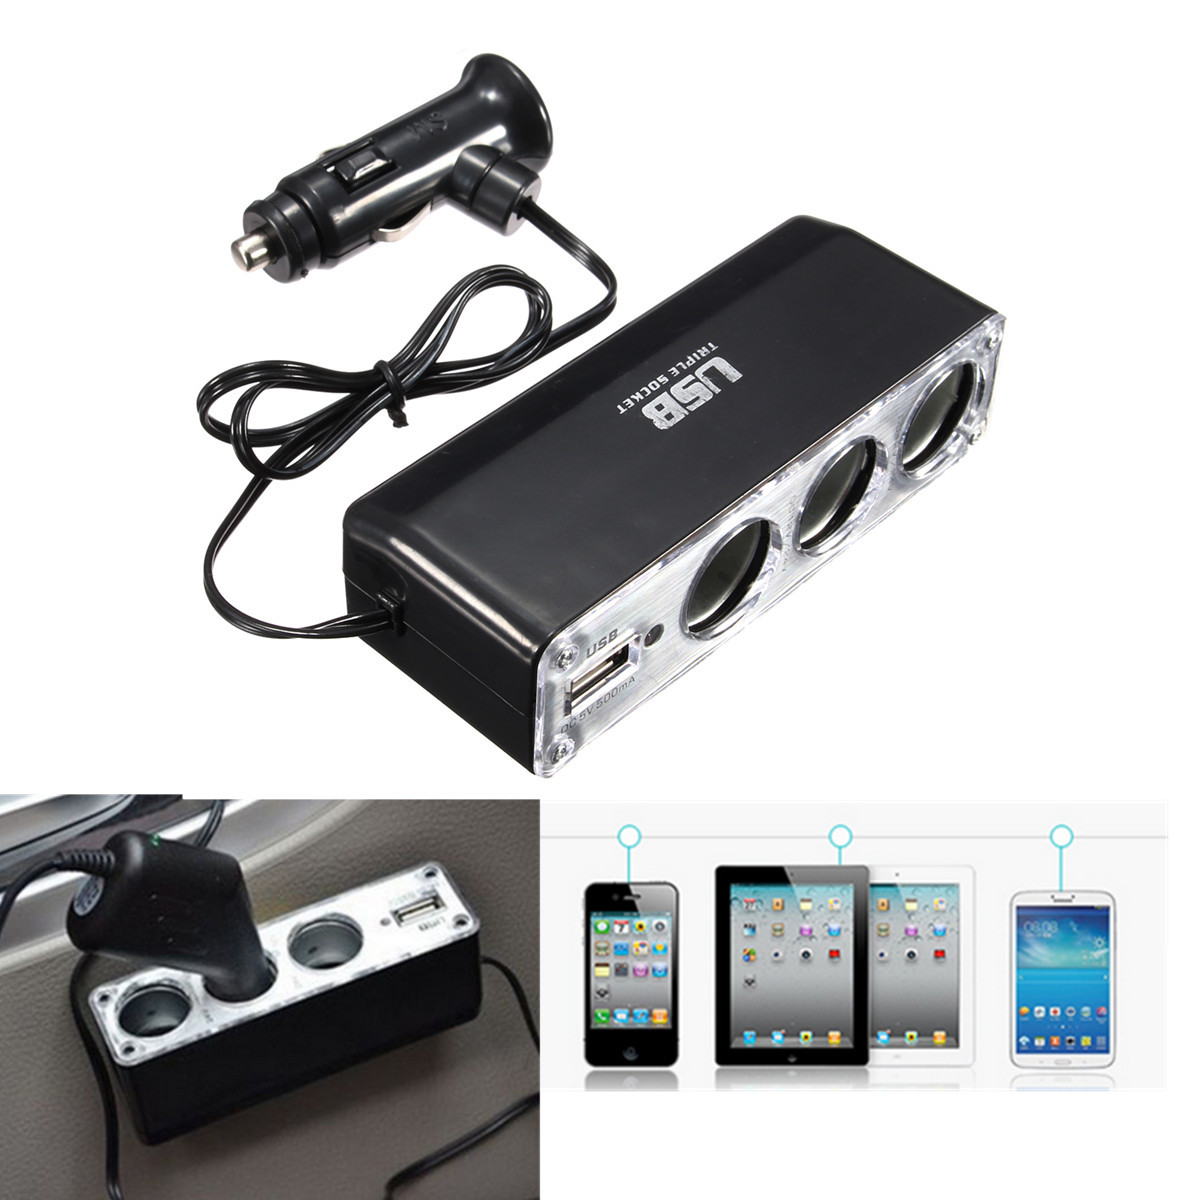 6a 3 ports voiture allume cigare multiprise chargeur for Chargeur mural iphone